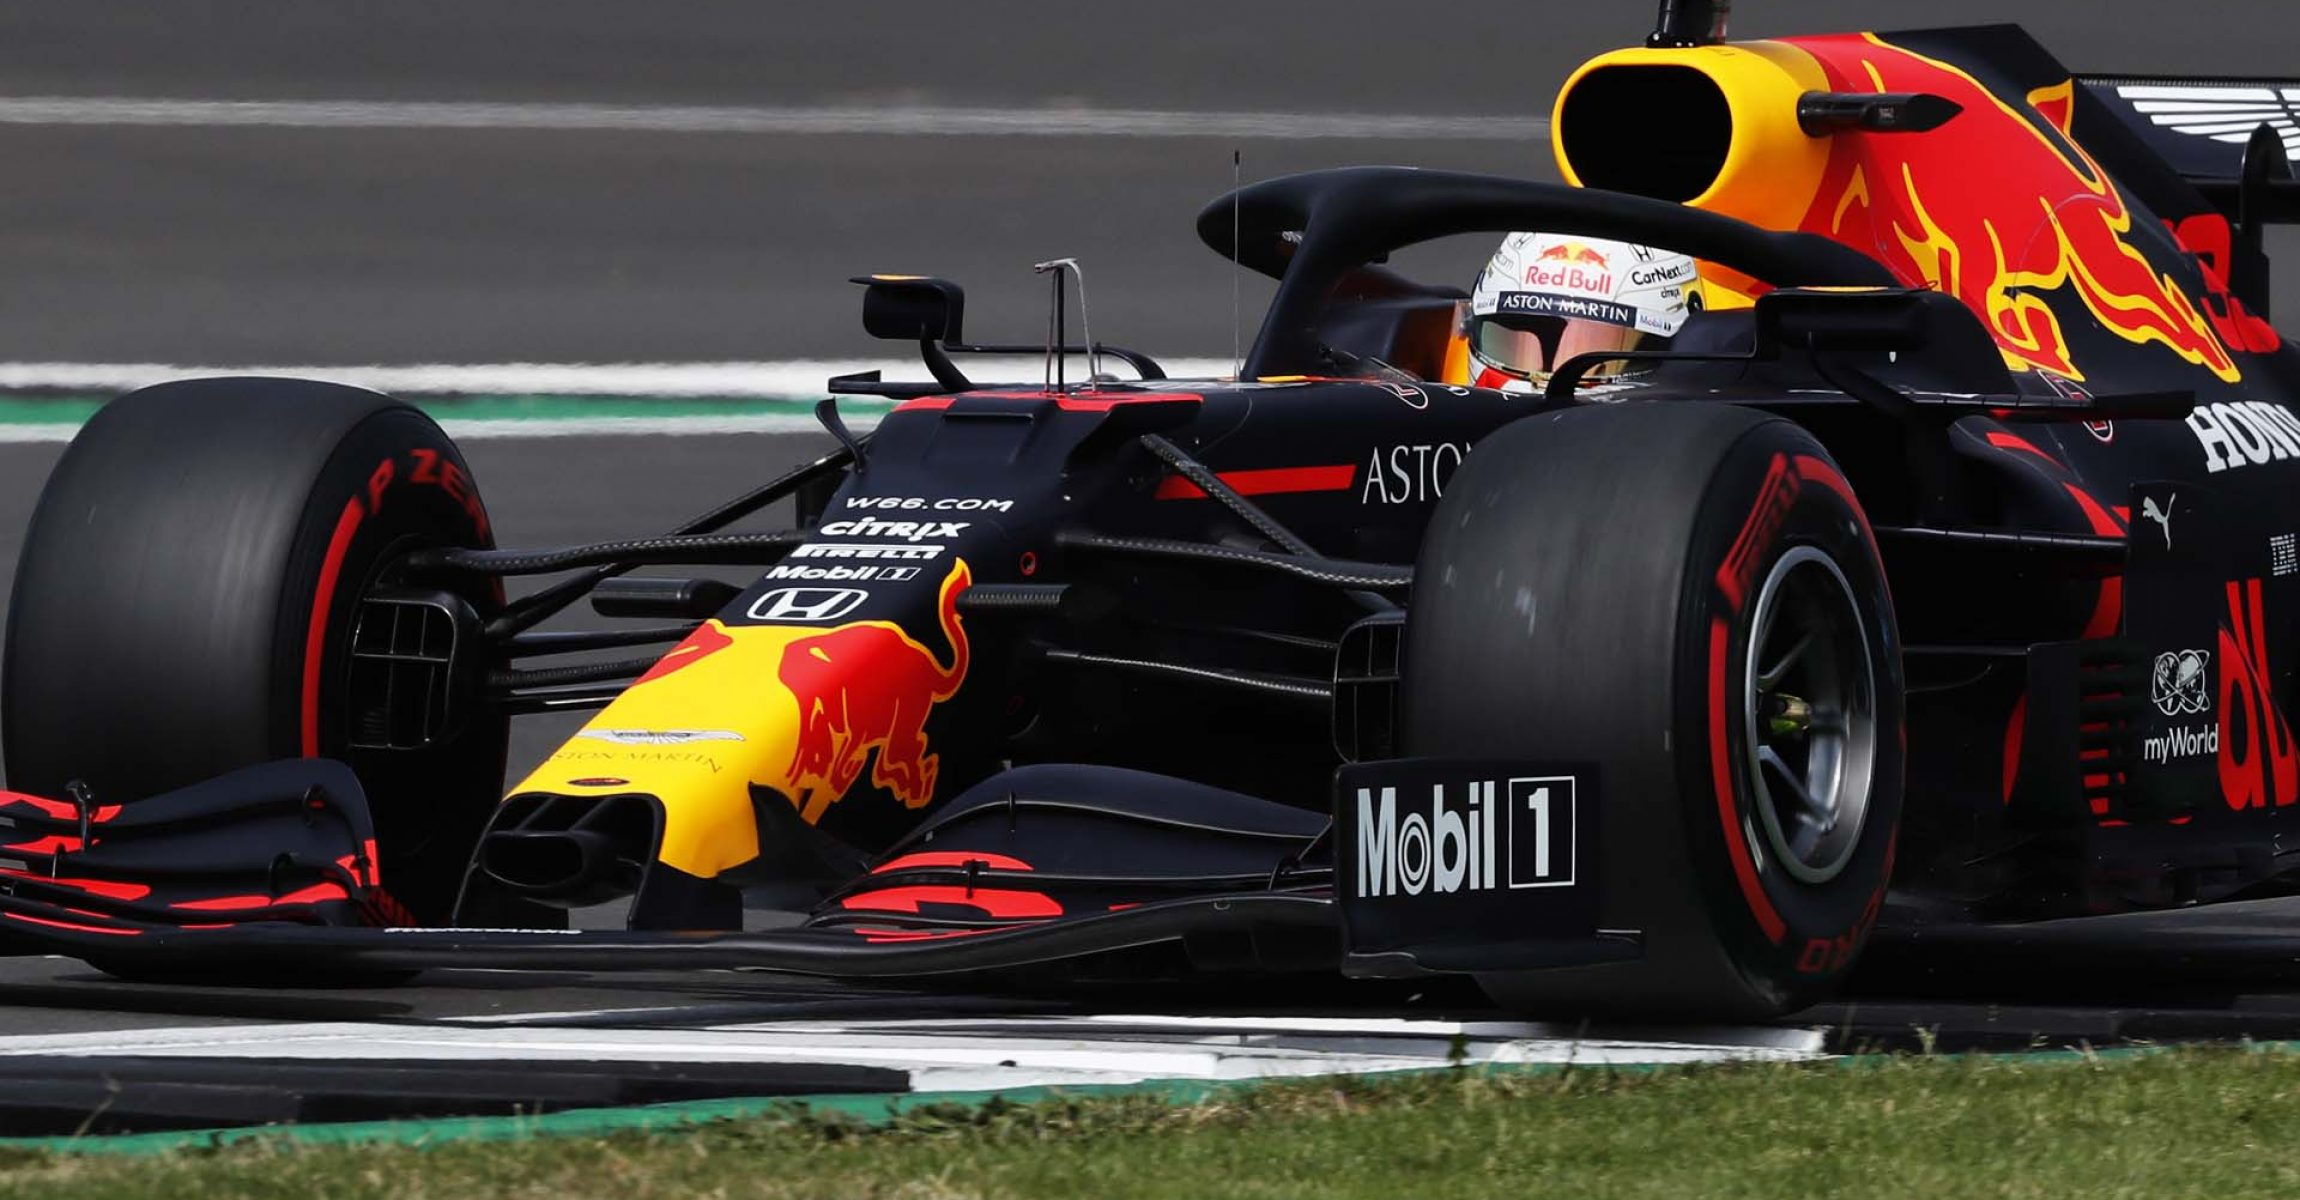 NORTHAMPTON, ENGLAND - AUGUST 08: Max Verstappen of the Netherlands driving the (33) Aston Martin Red Bull Racing RB16 on track during qualifying for the F1 70th Anniversary Grand Prix at Silverstone on August 08, 2020 in Northampton, England. (Photo by Frank Augstein/Pool via Getty Images)